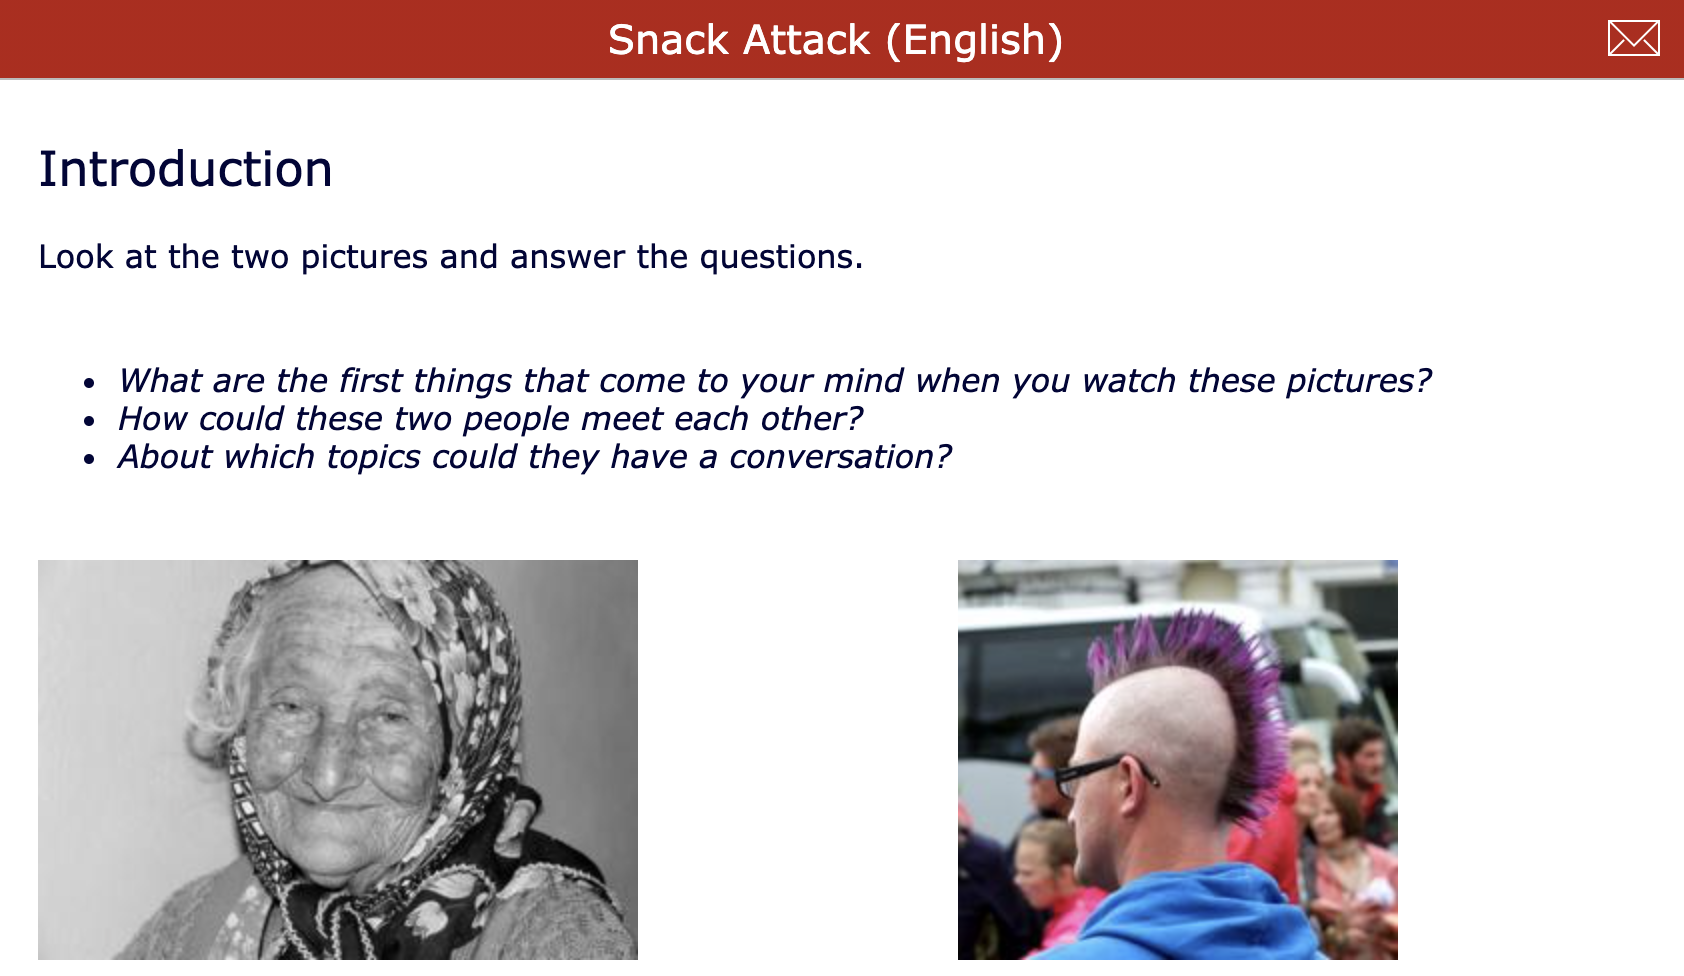 Short films - Snack attack - English lesson about stereotypes